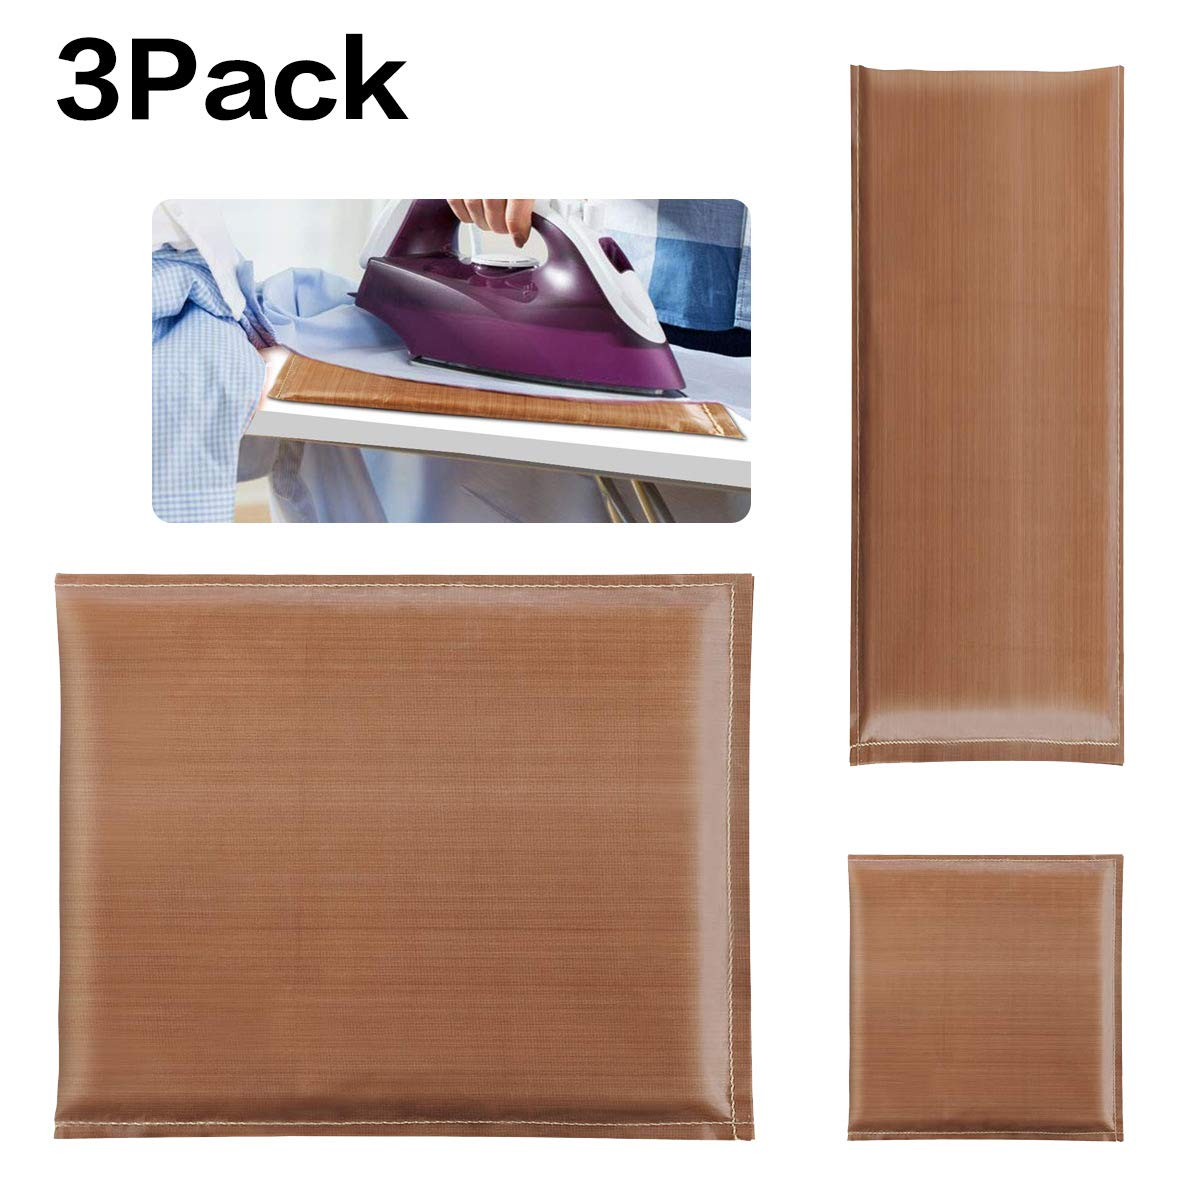 3 Pack Heat Press Pillow 3 Sizes Teflon Pressing Transfer Pillows Mat for Heat Pressing Shirt and Heat Pressing Digital Transfer Projects